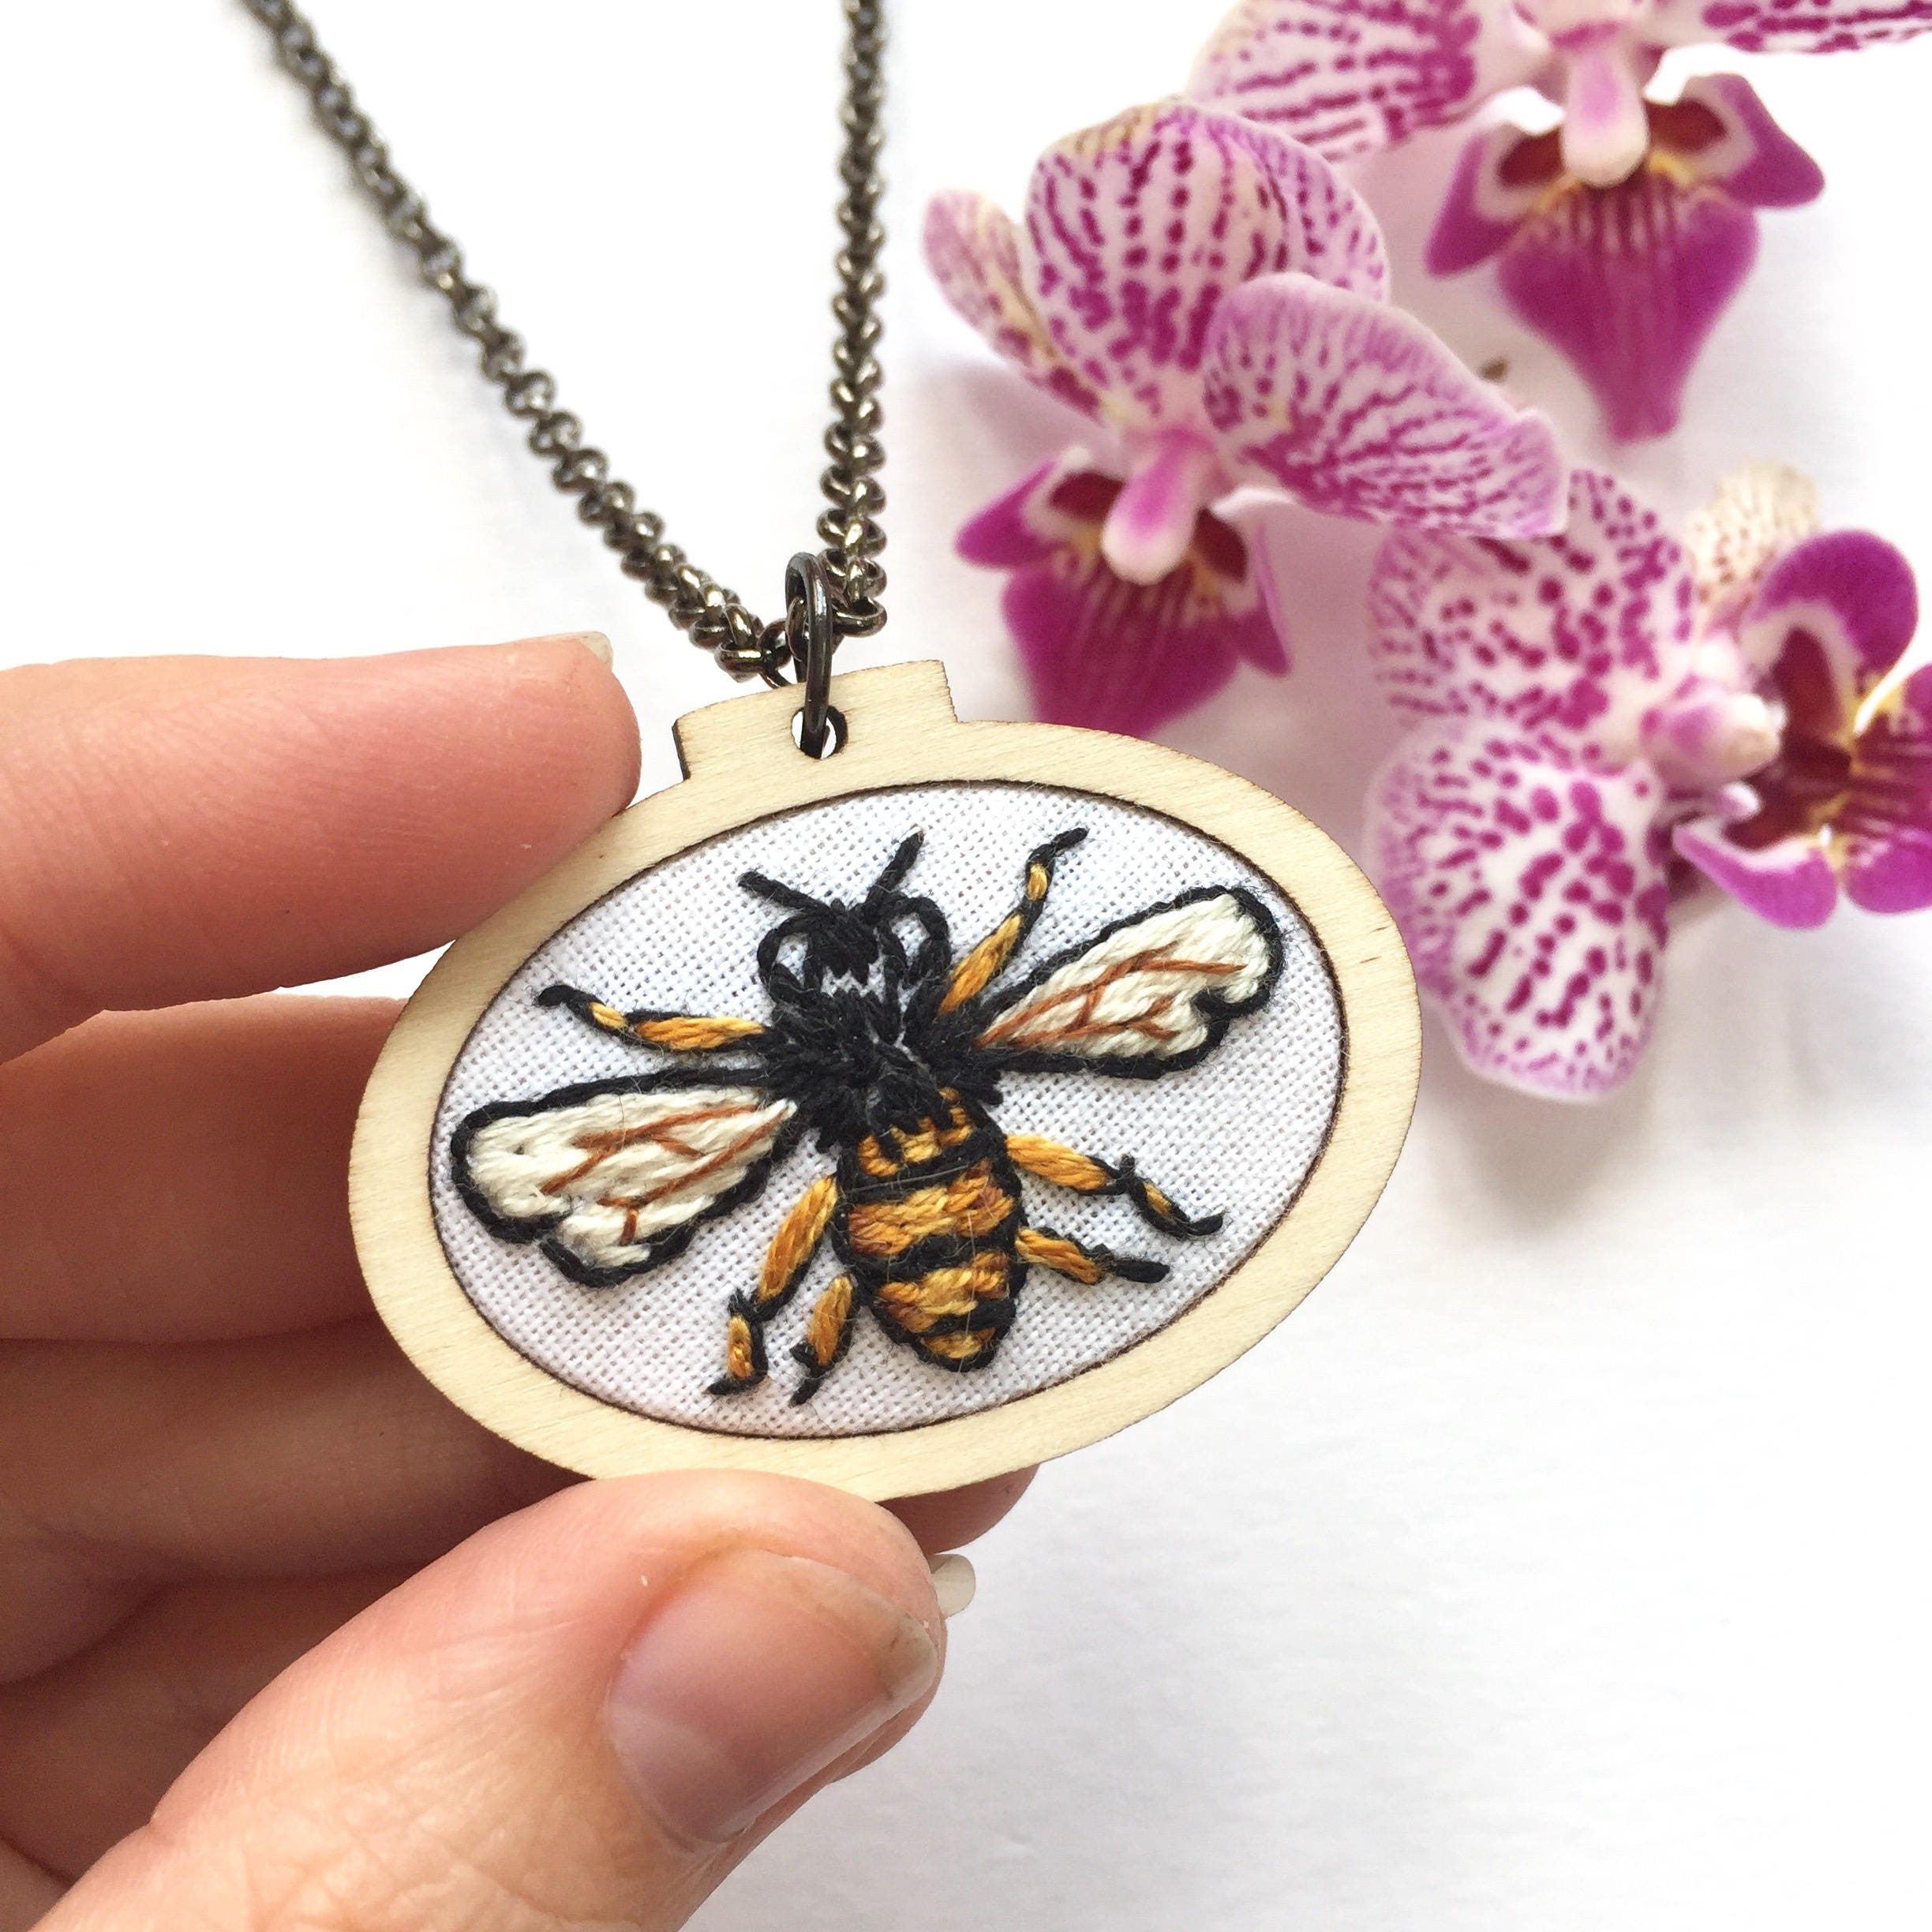 large silver what ornate always honey oh info design wanted bee necklace i pendant product